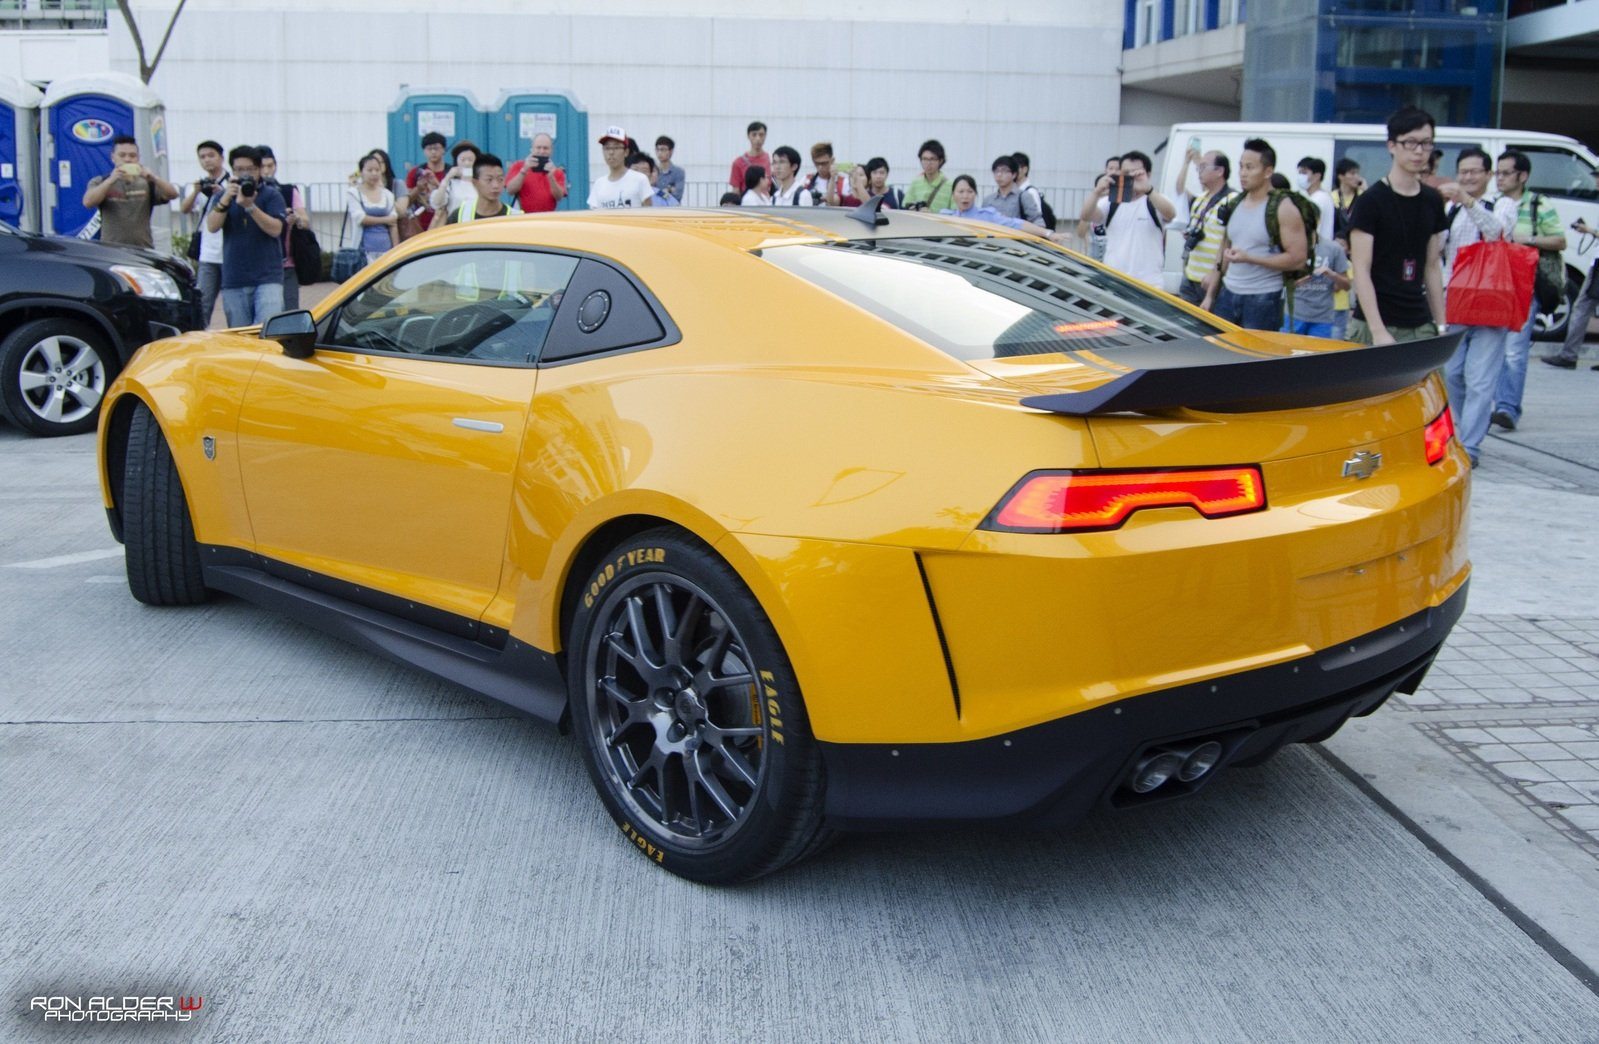 2014 chevrolet transformers 4 bumblebee camaro picture. Cars Review. Best American Auto & Cars Review